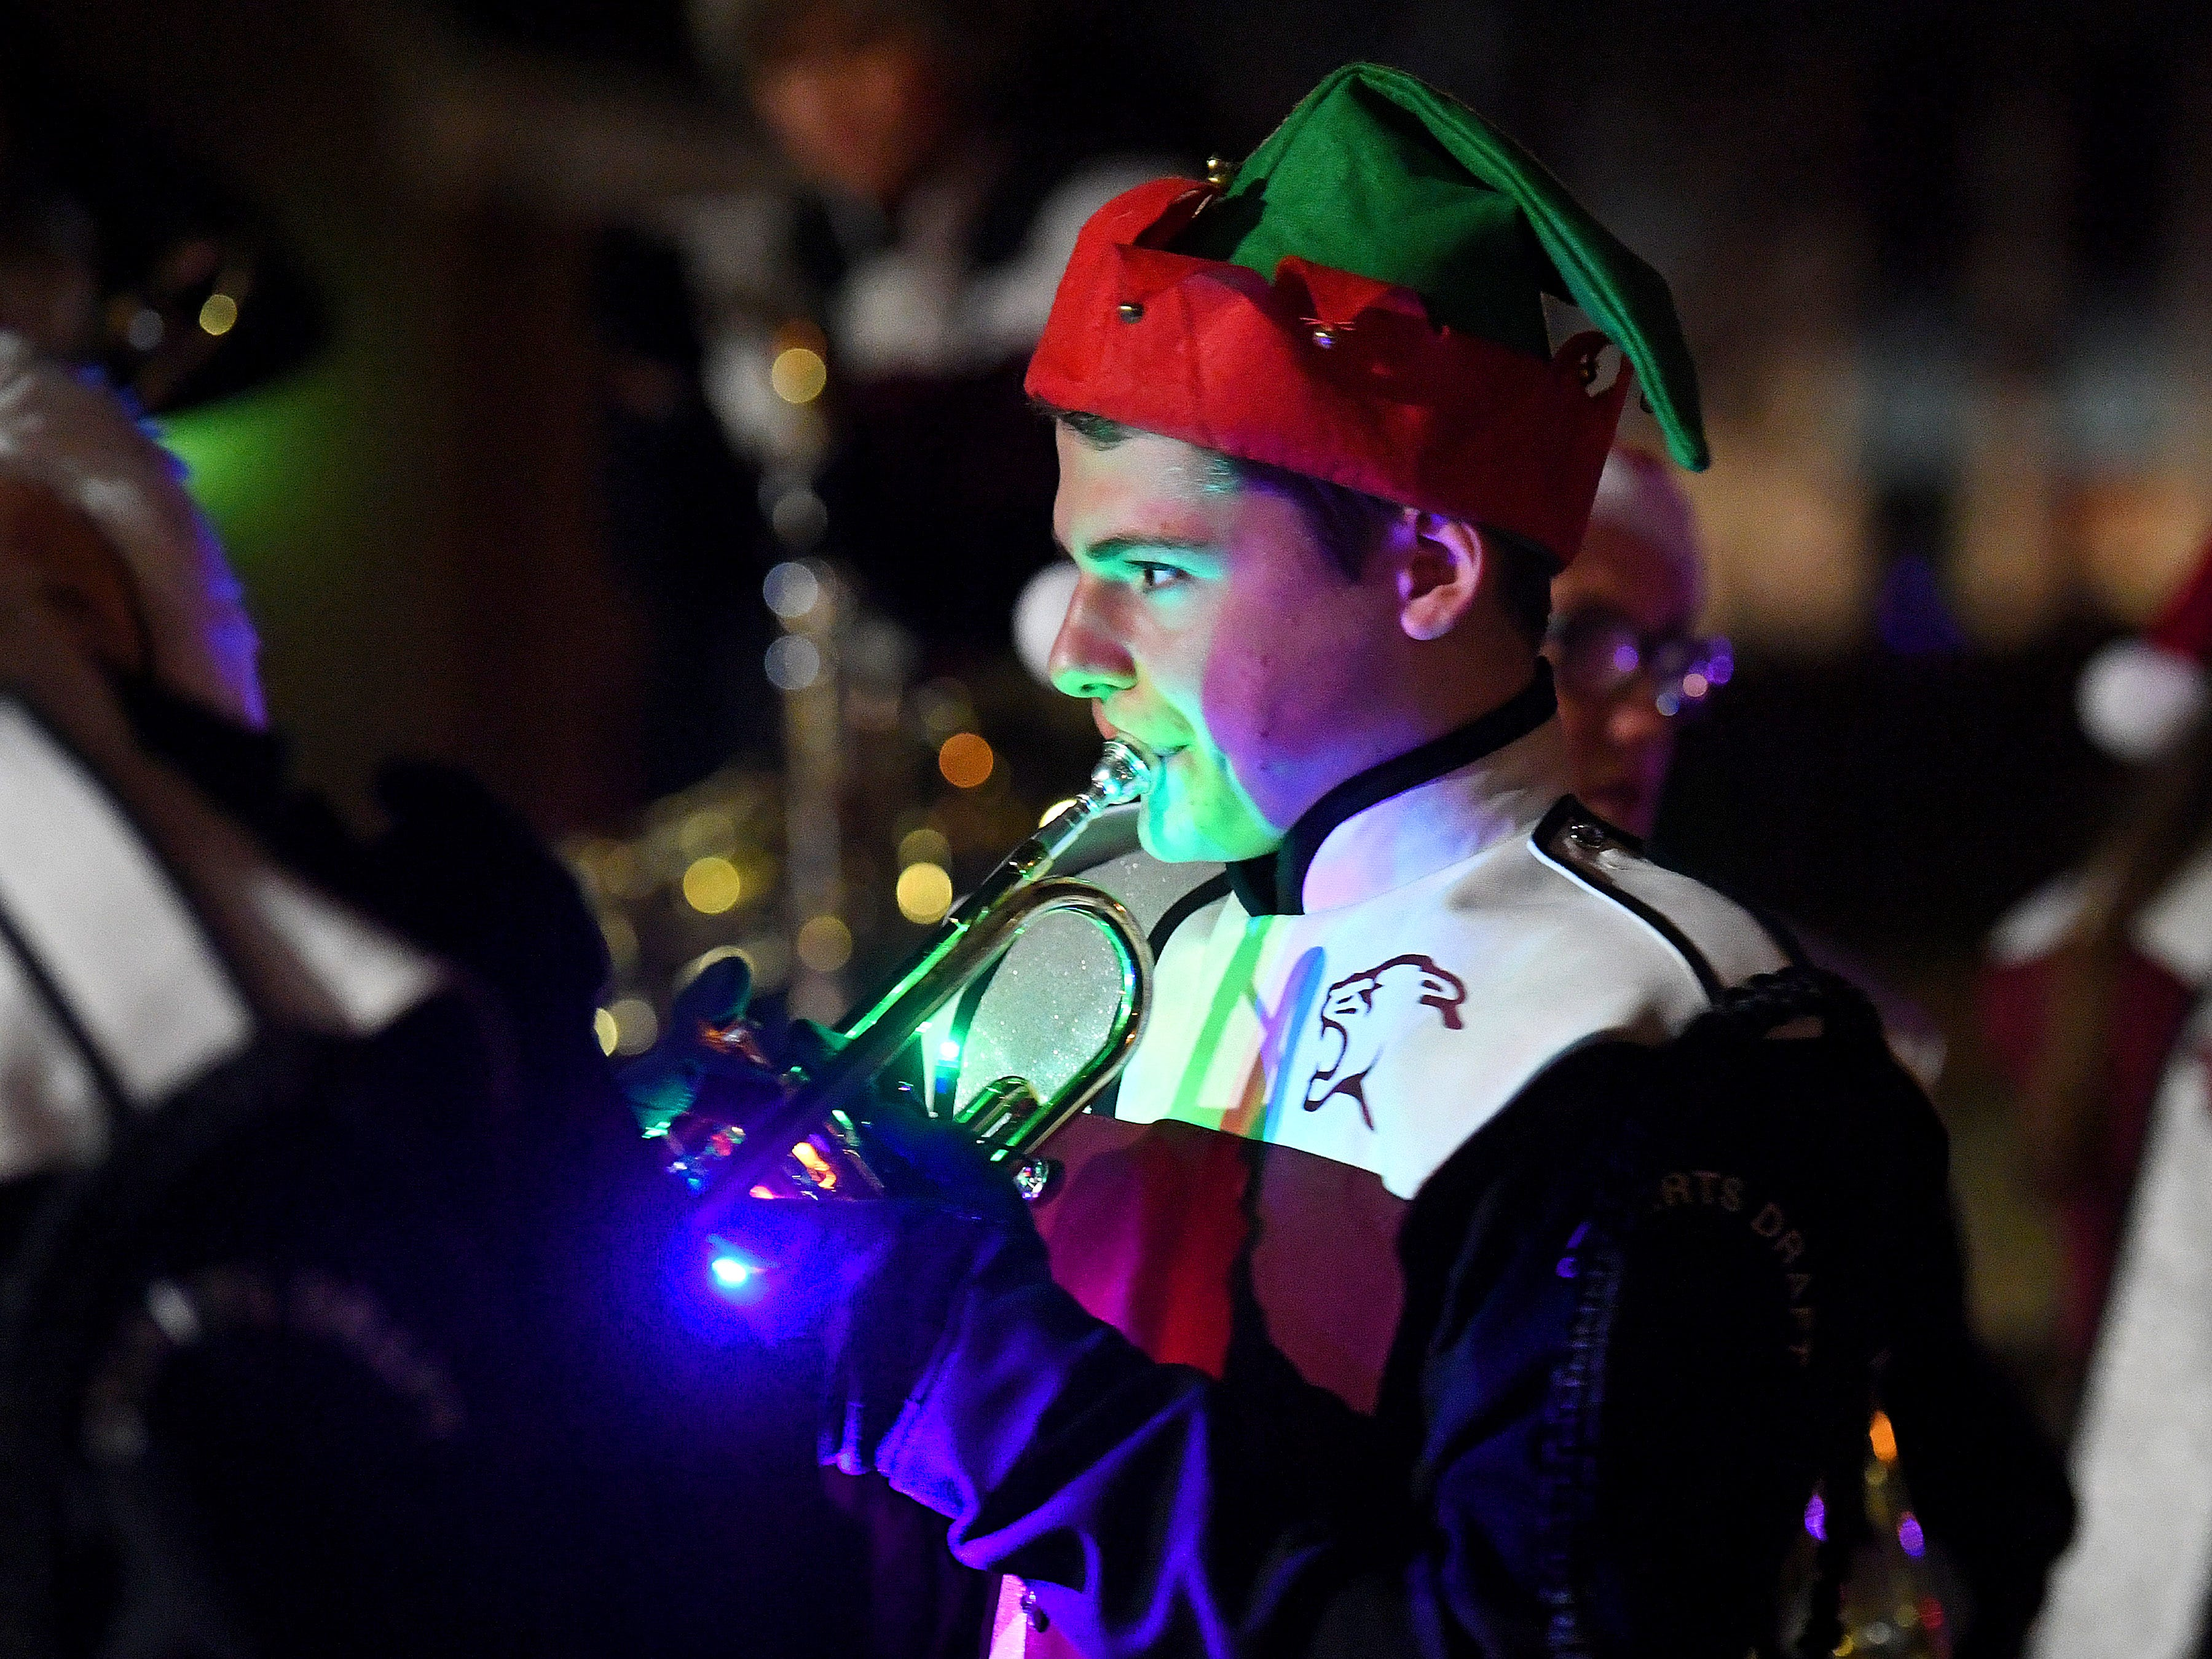 Members of Stuarts Draft High School's marching band rehearse together while waiting for the Staunton Christmas Parade to begin on Monday, Nov. 26, 2018.